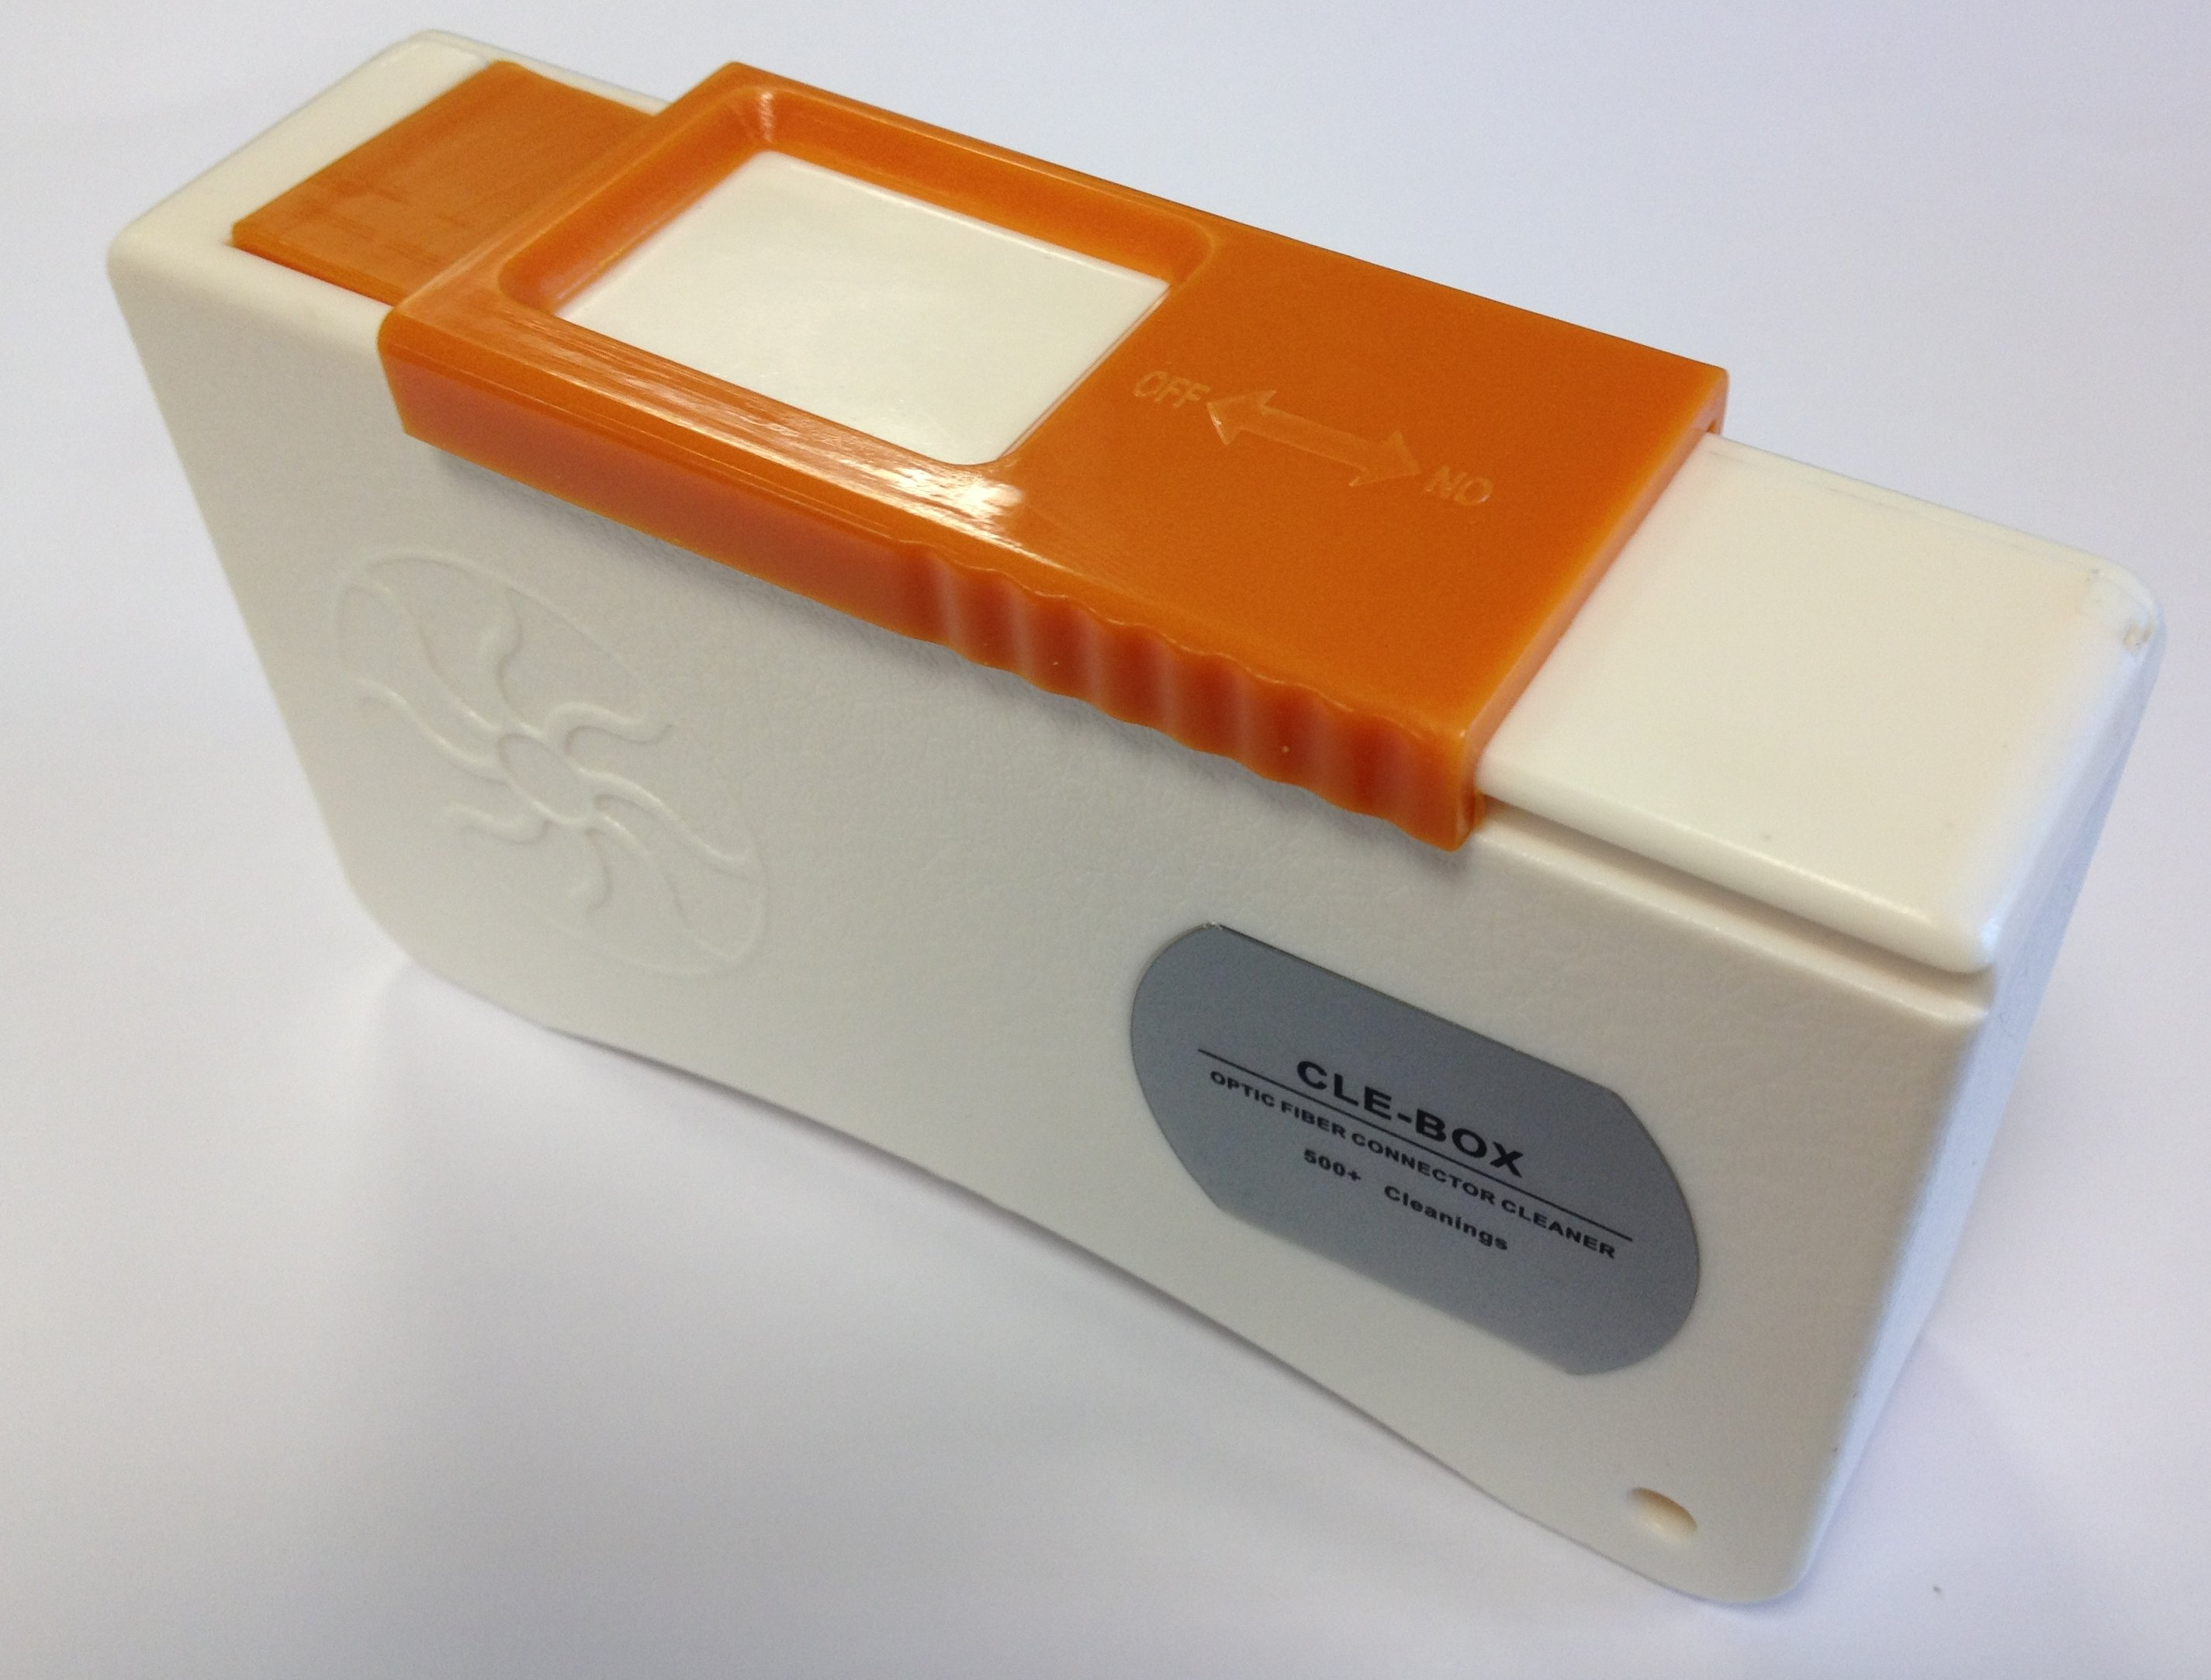 GI Cle-Box FC/PC Cleaning Tool